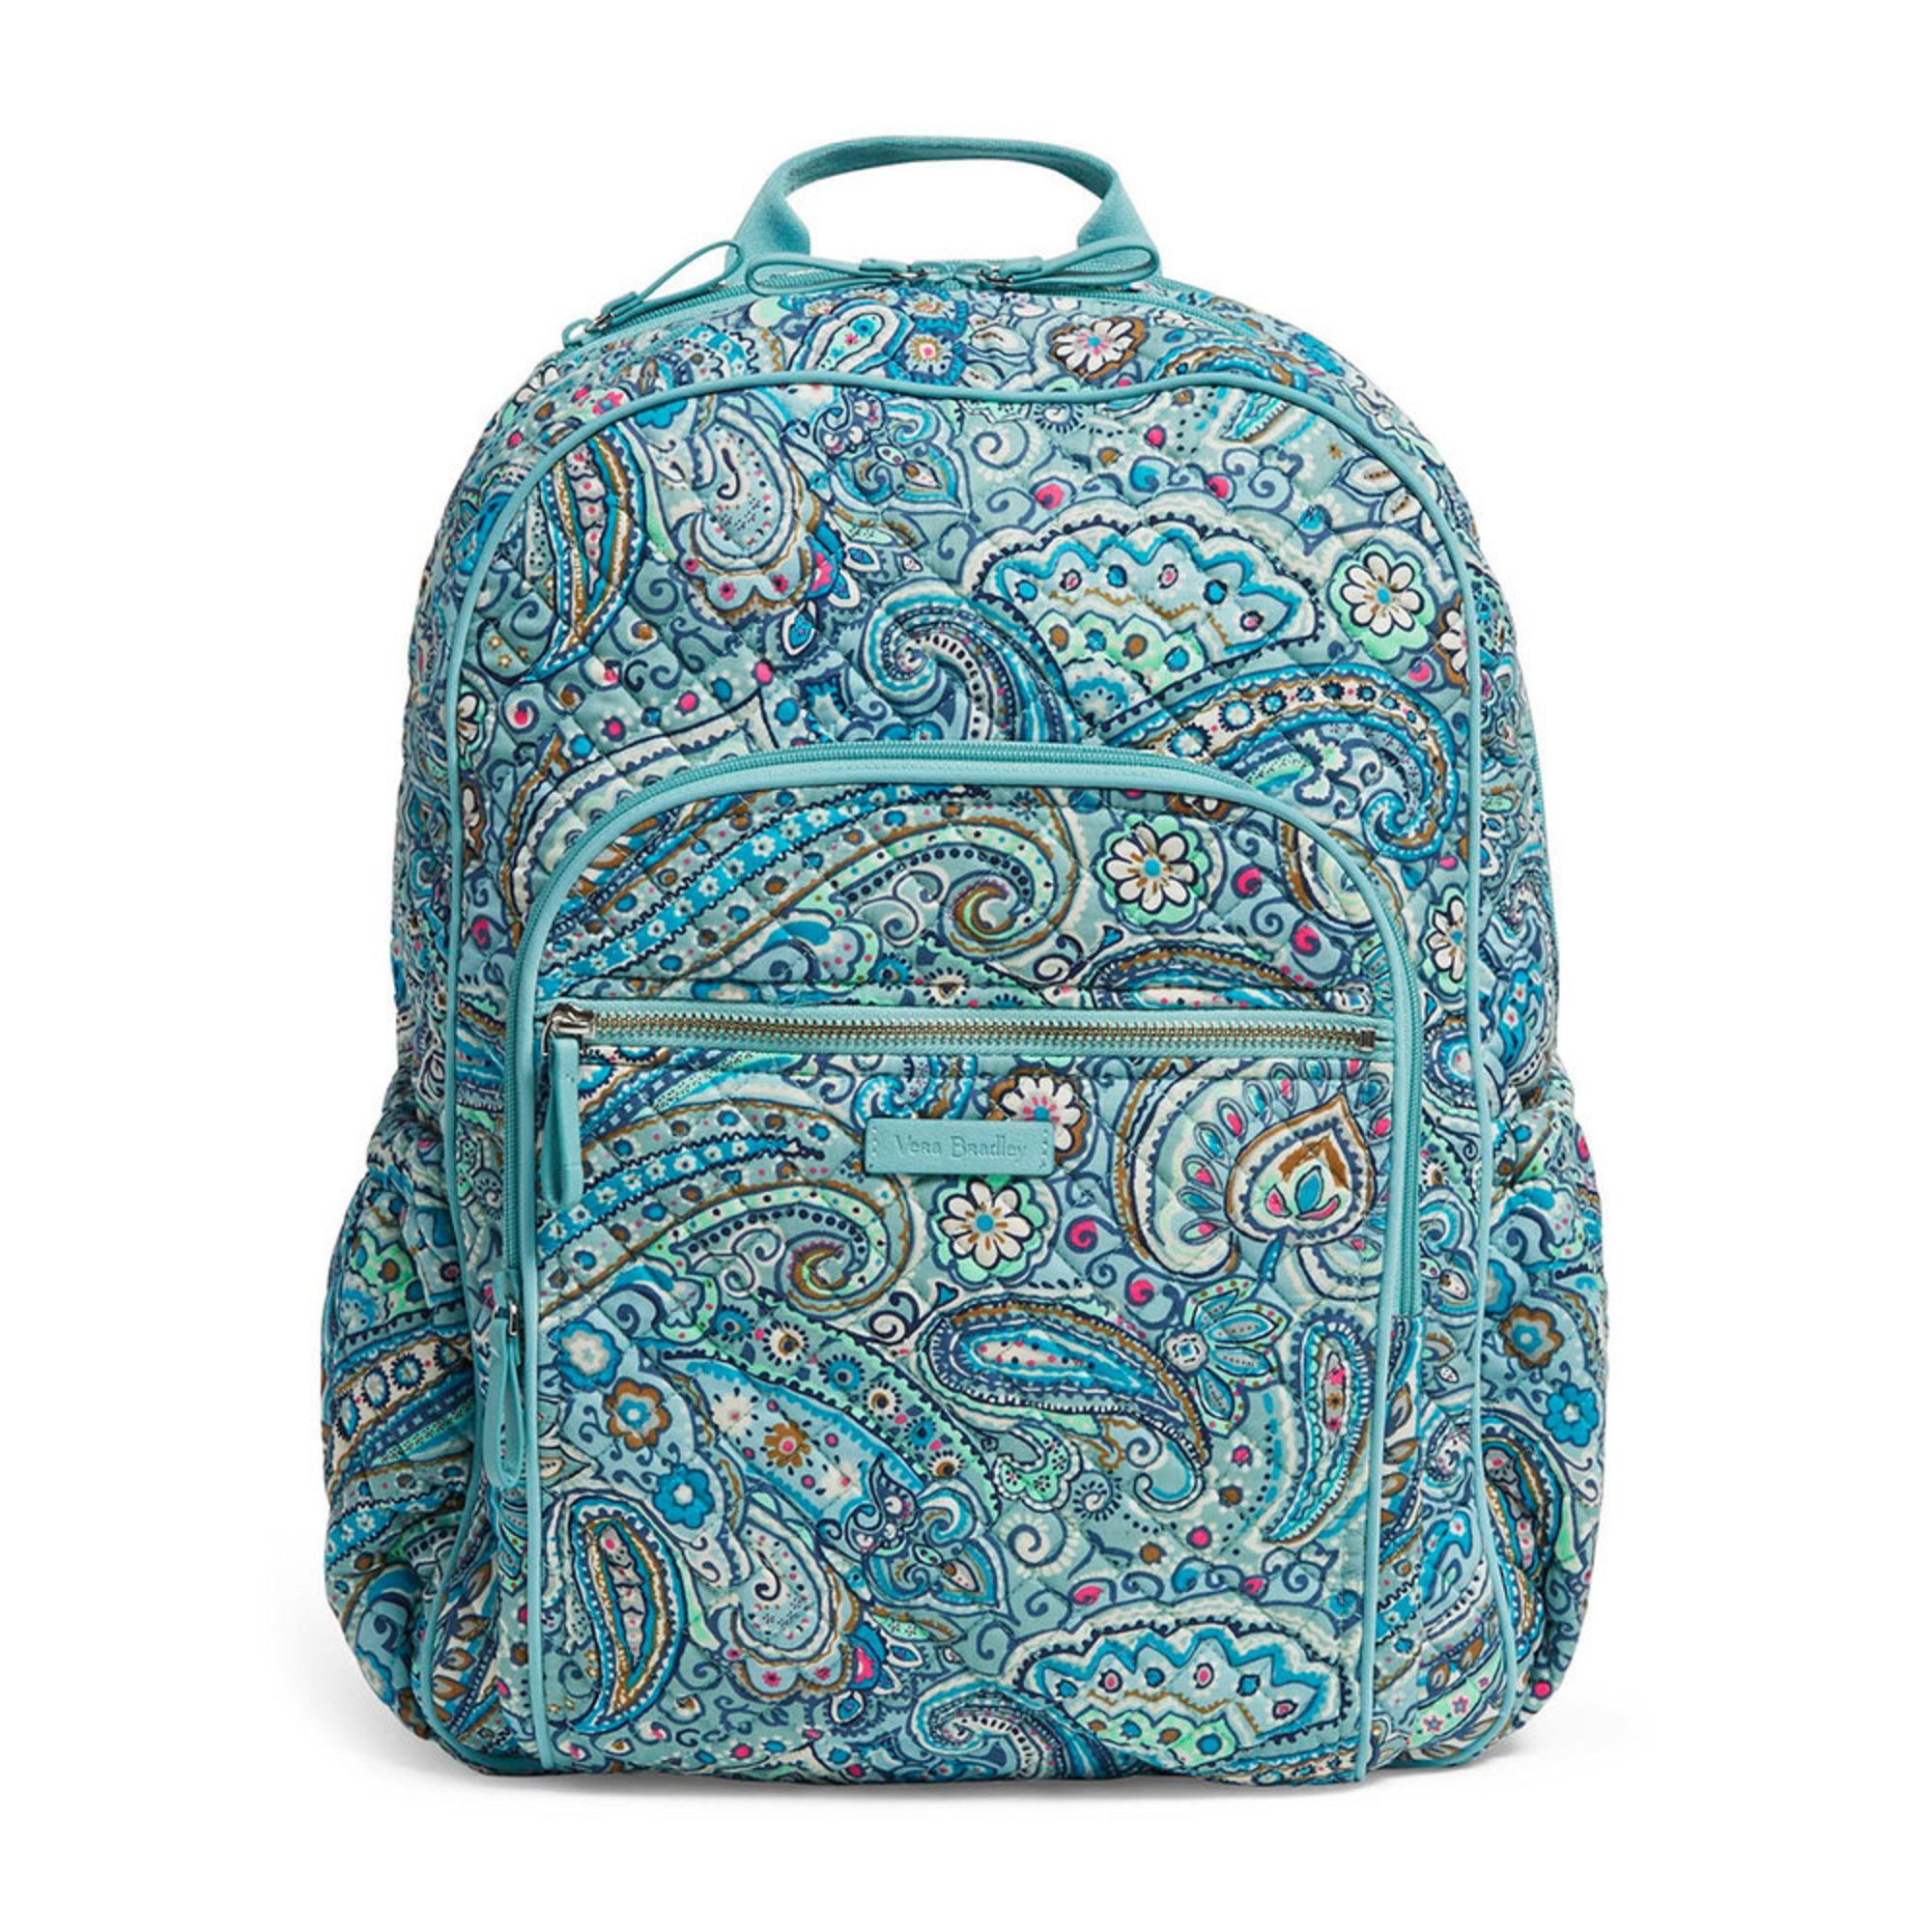 d65def6080e Vera Bradley Daisy Dot Paisley Campus Backpack   Women s Backpacks ...